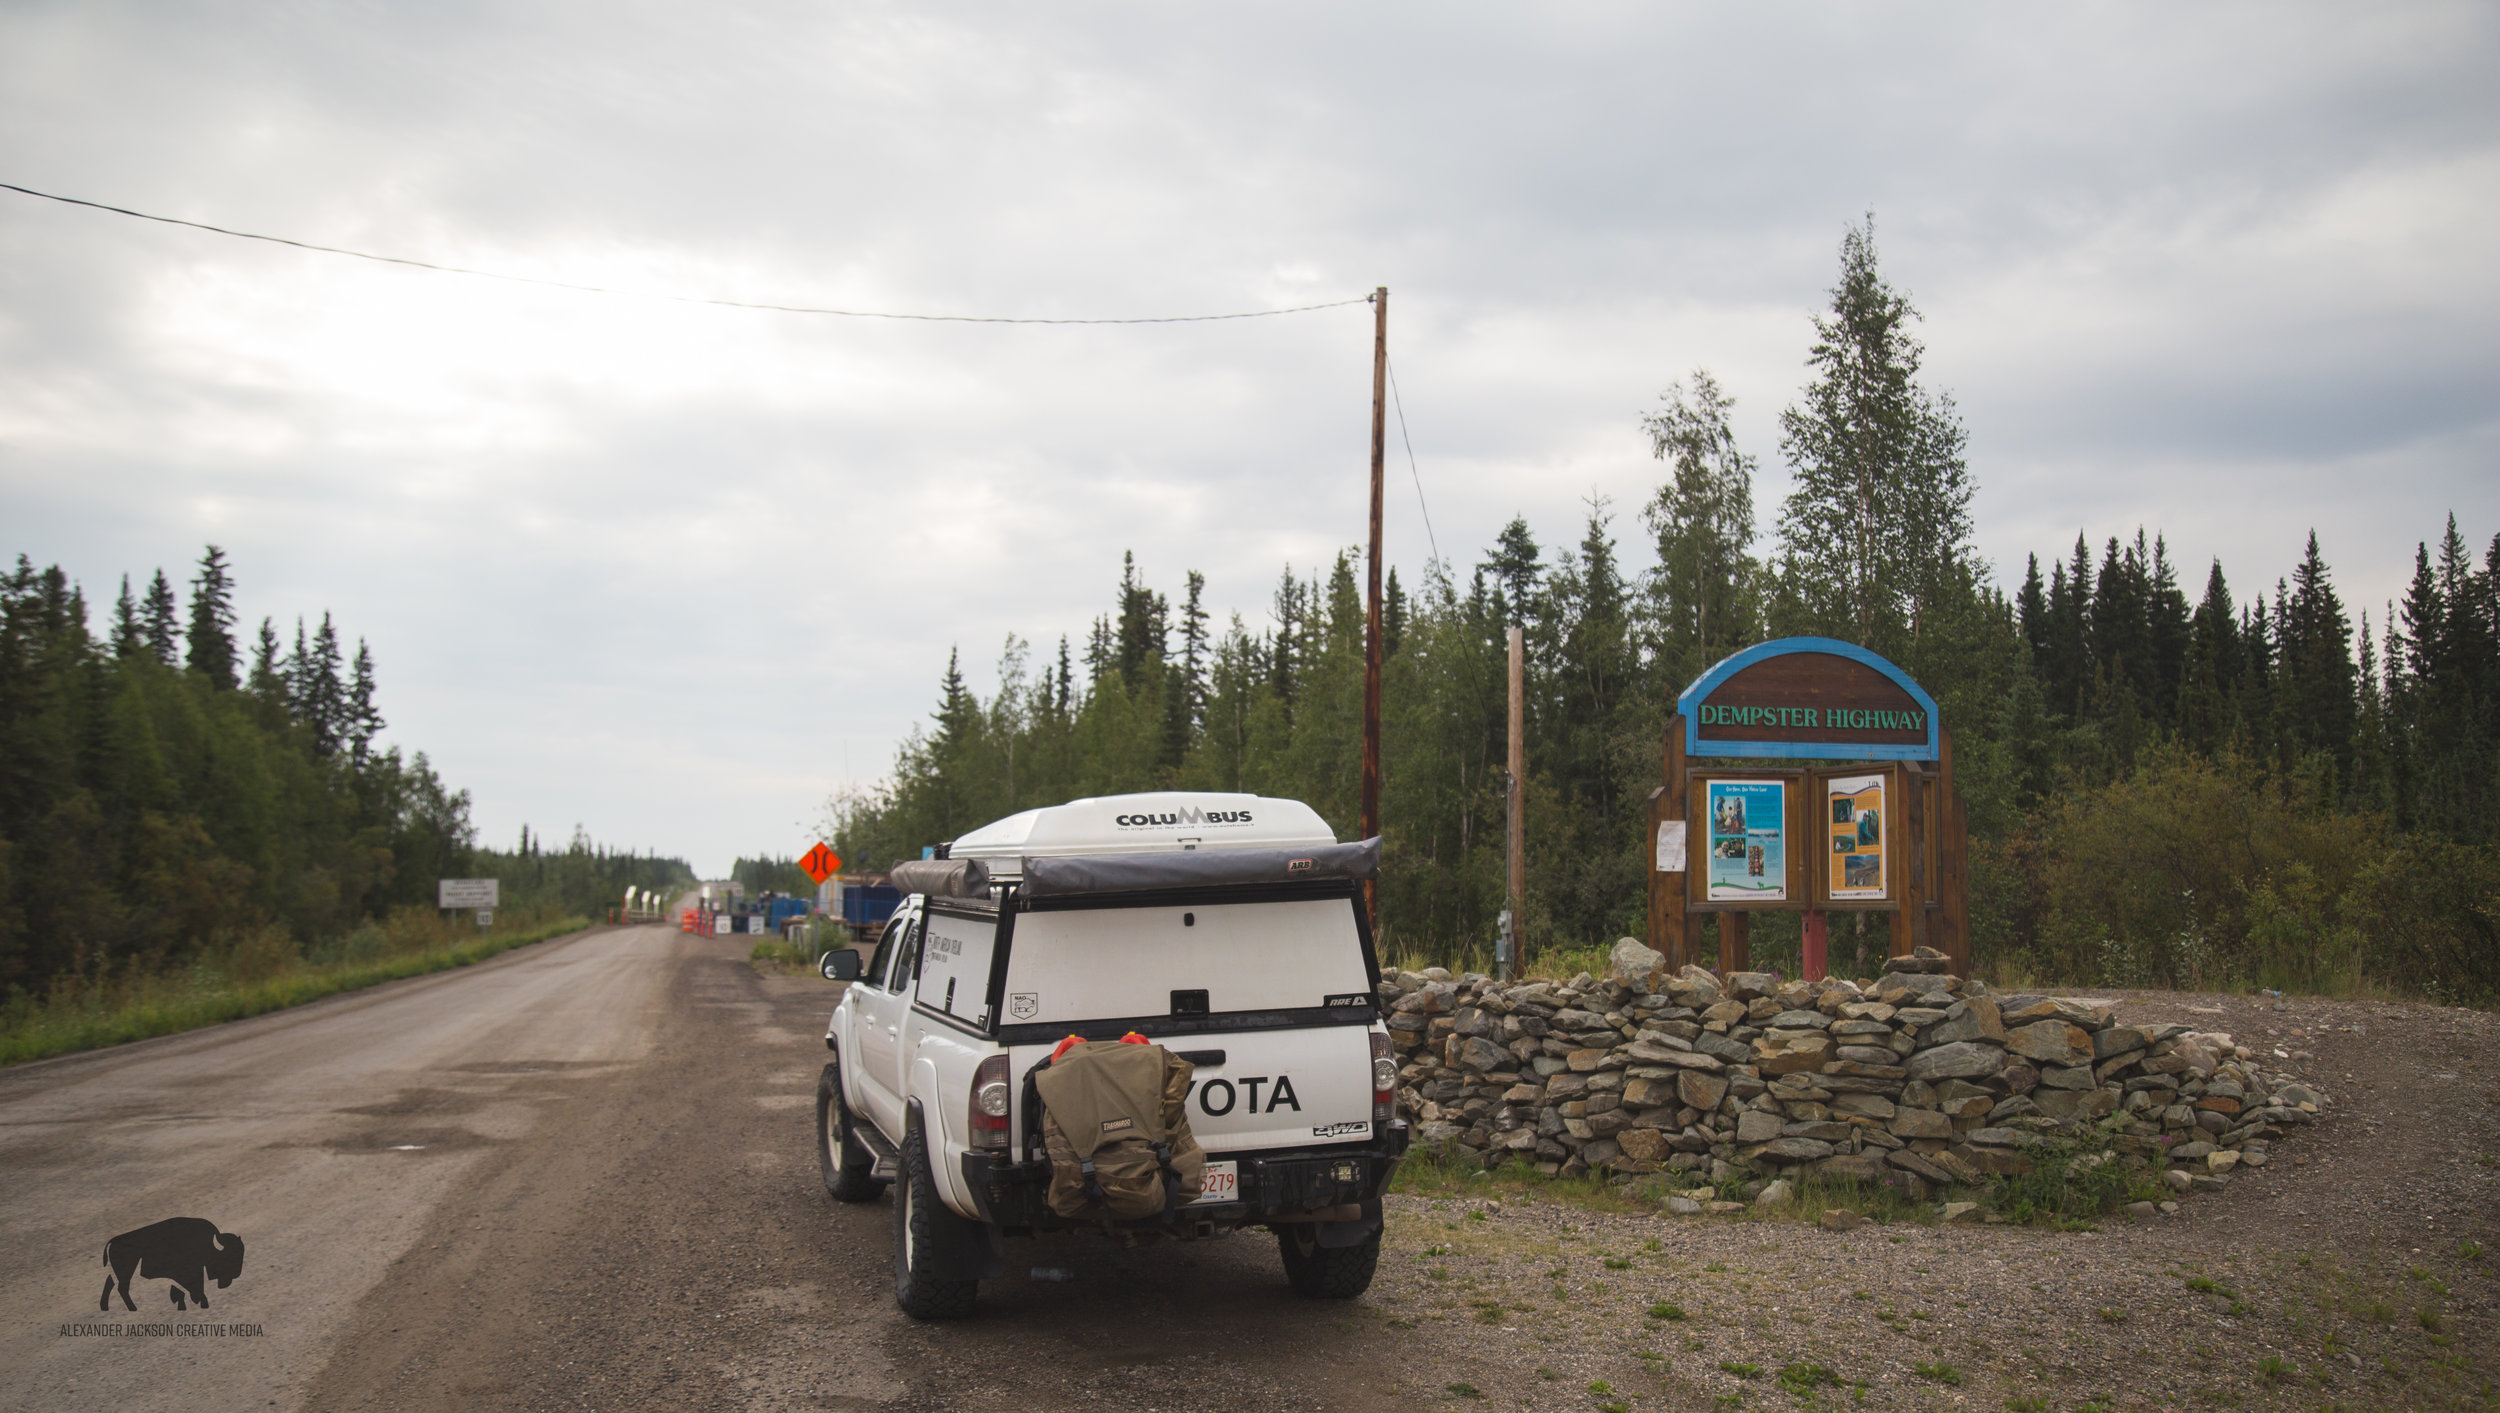 At the start of the Dempster Highway.